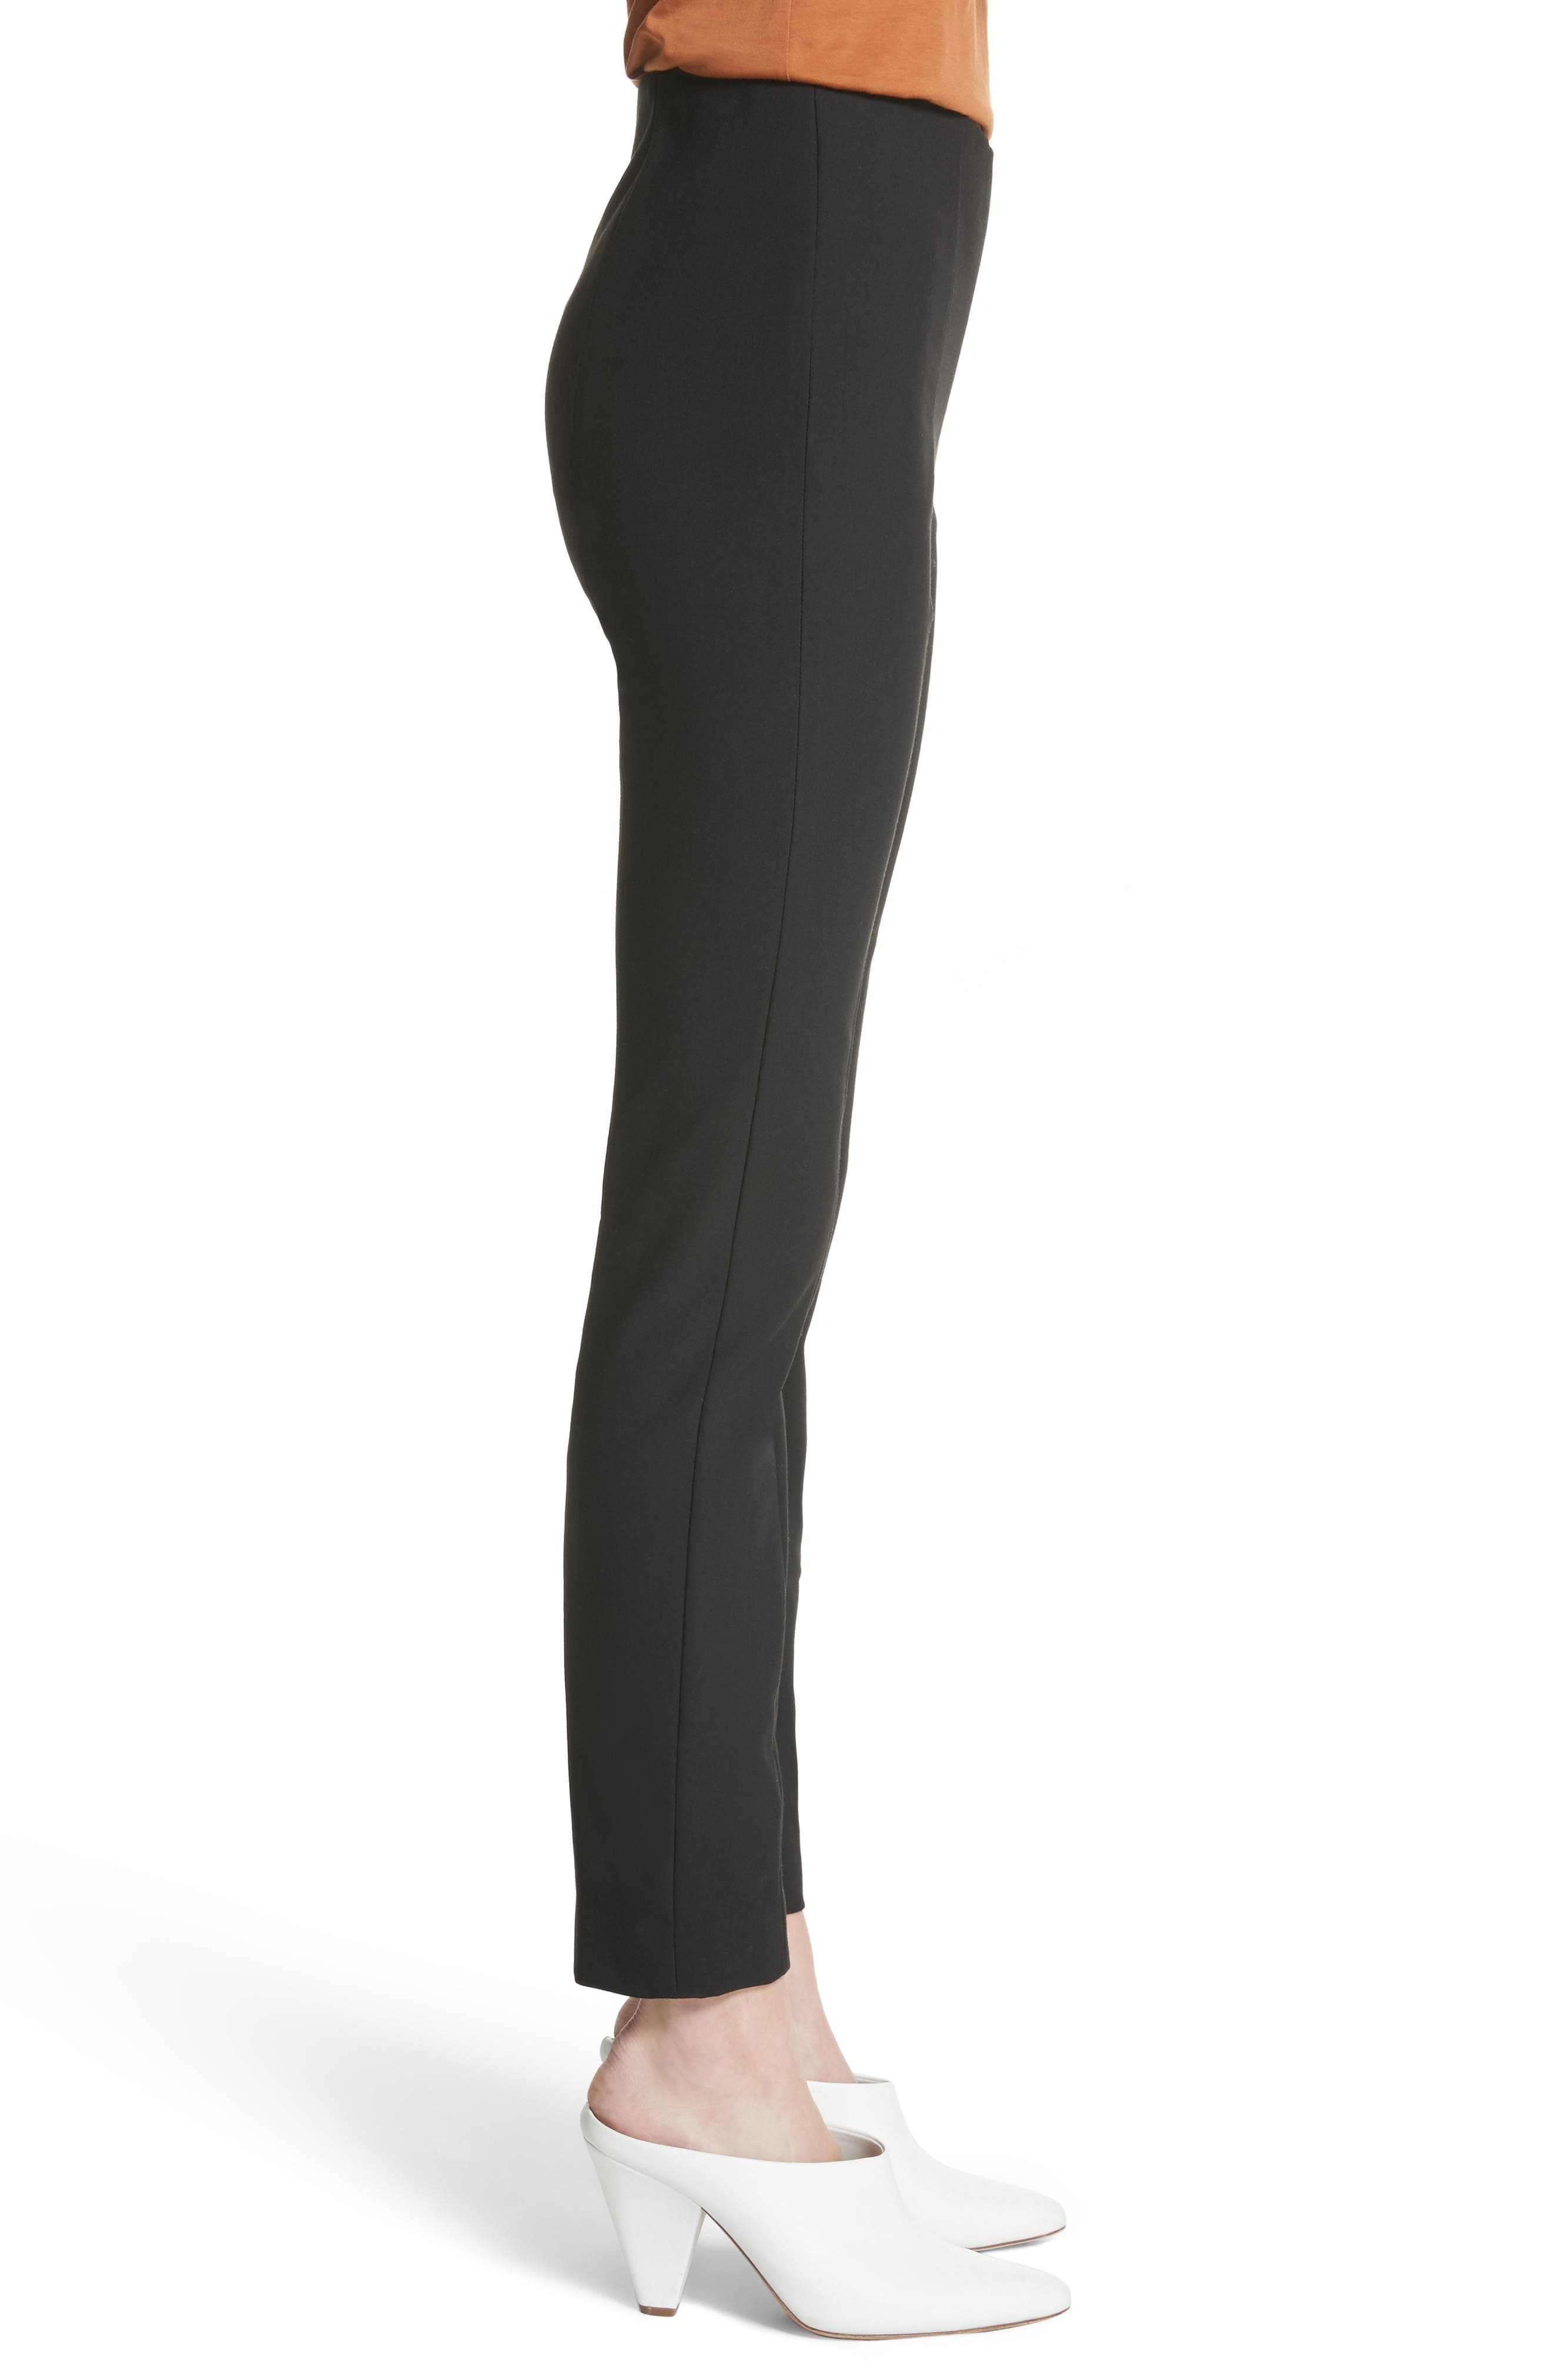 High Waist Leggings,                             Alternate thumbnail 3, color,                             001